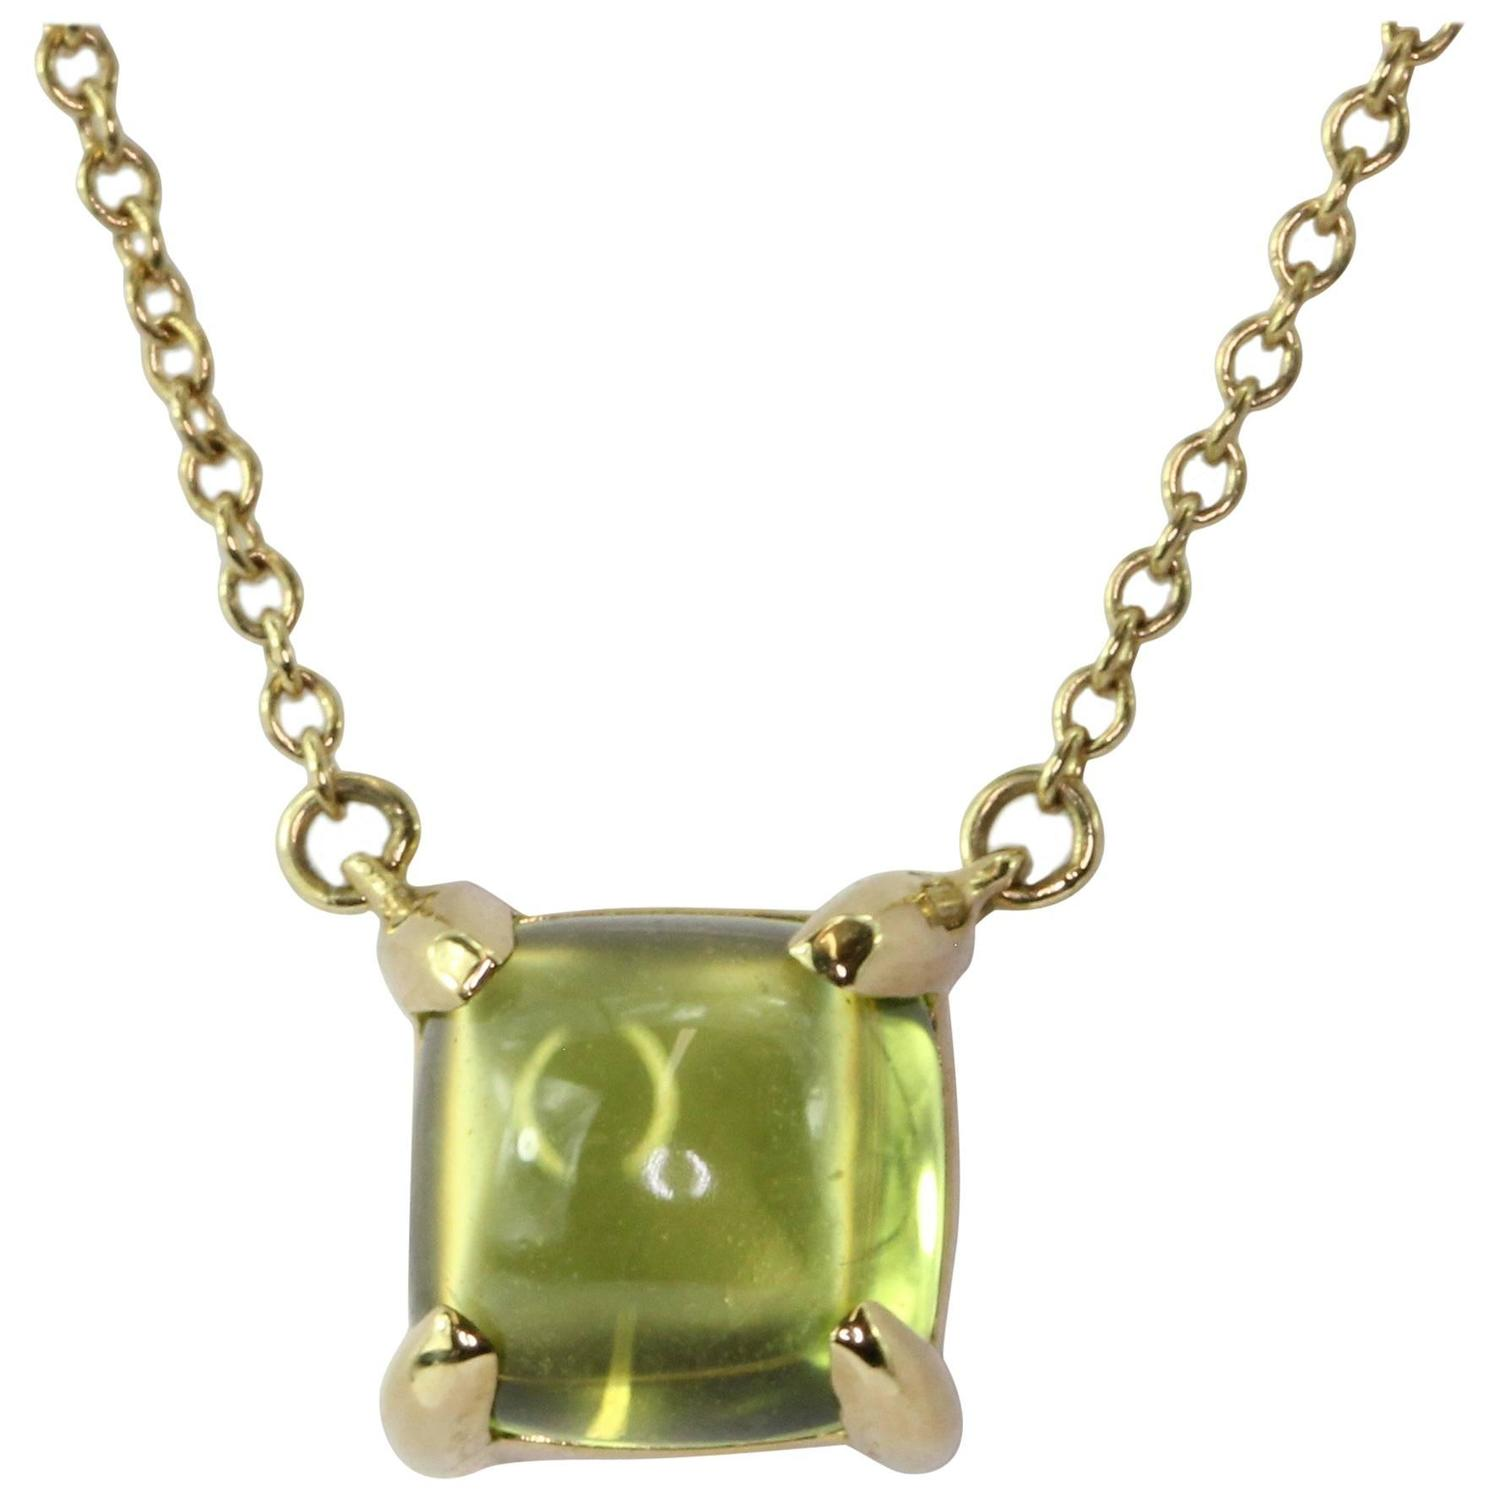 Antique Peridot Drop Necklaces 25 For Sale at 1stdibs